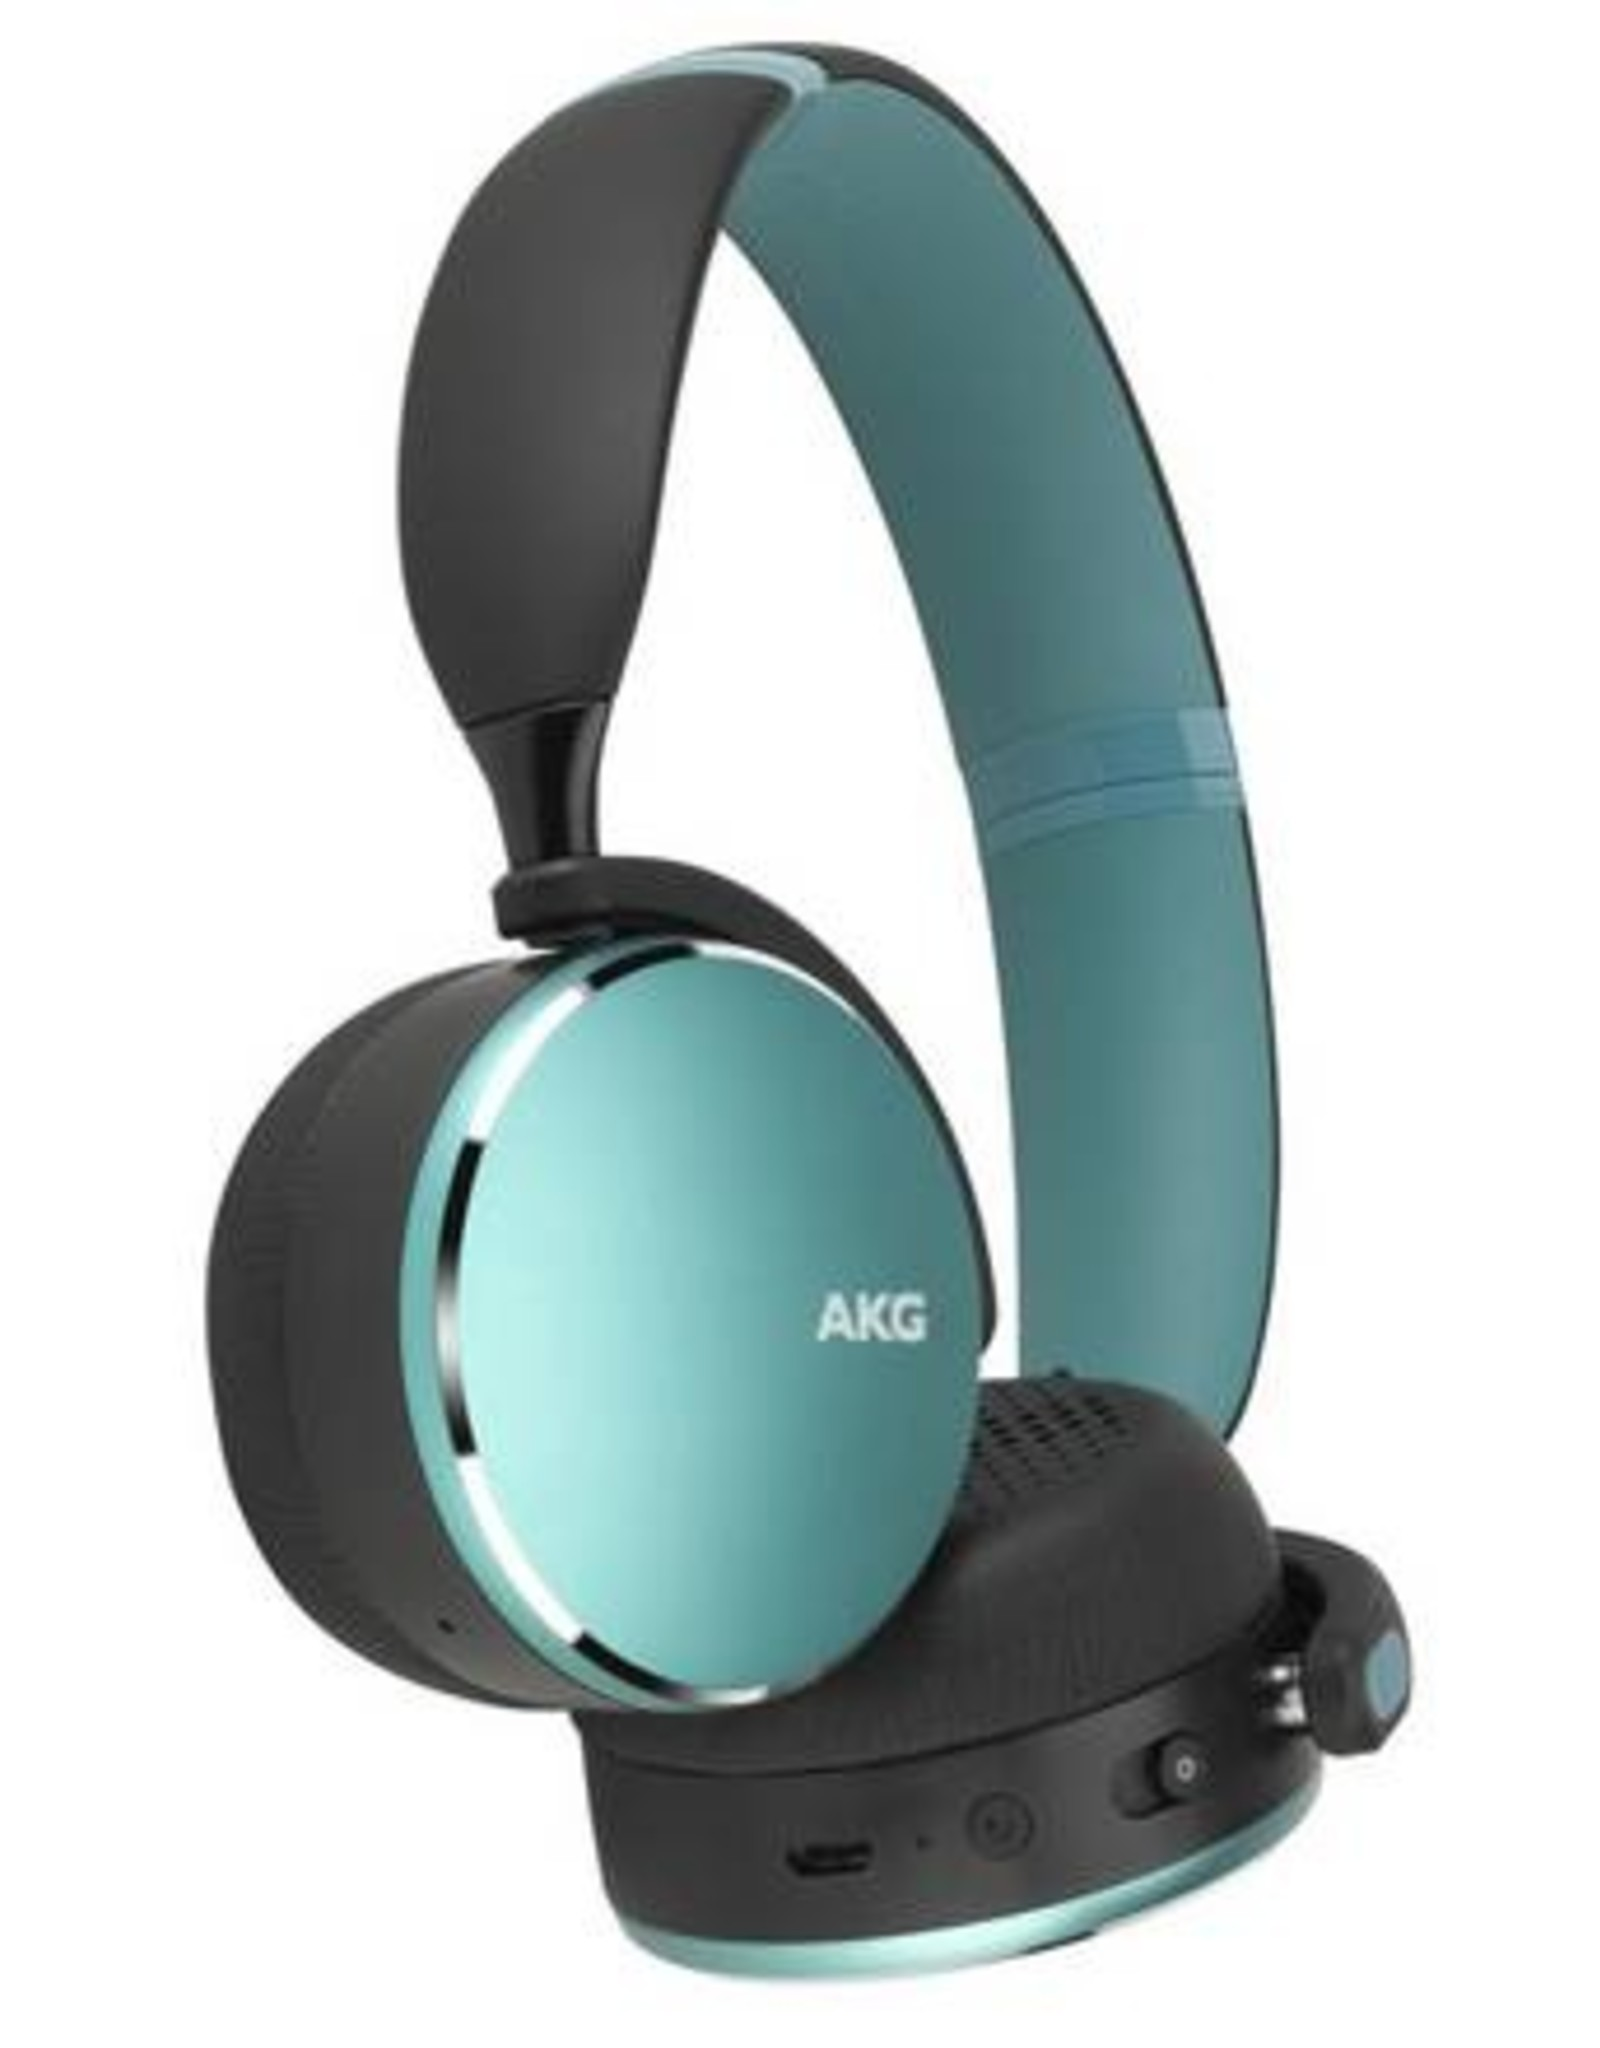 AKG AKG Y500 | Headphones with mic - on-ear - Bluetooth - wireless - Green